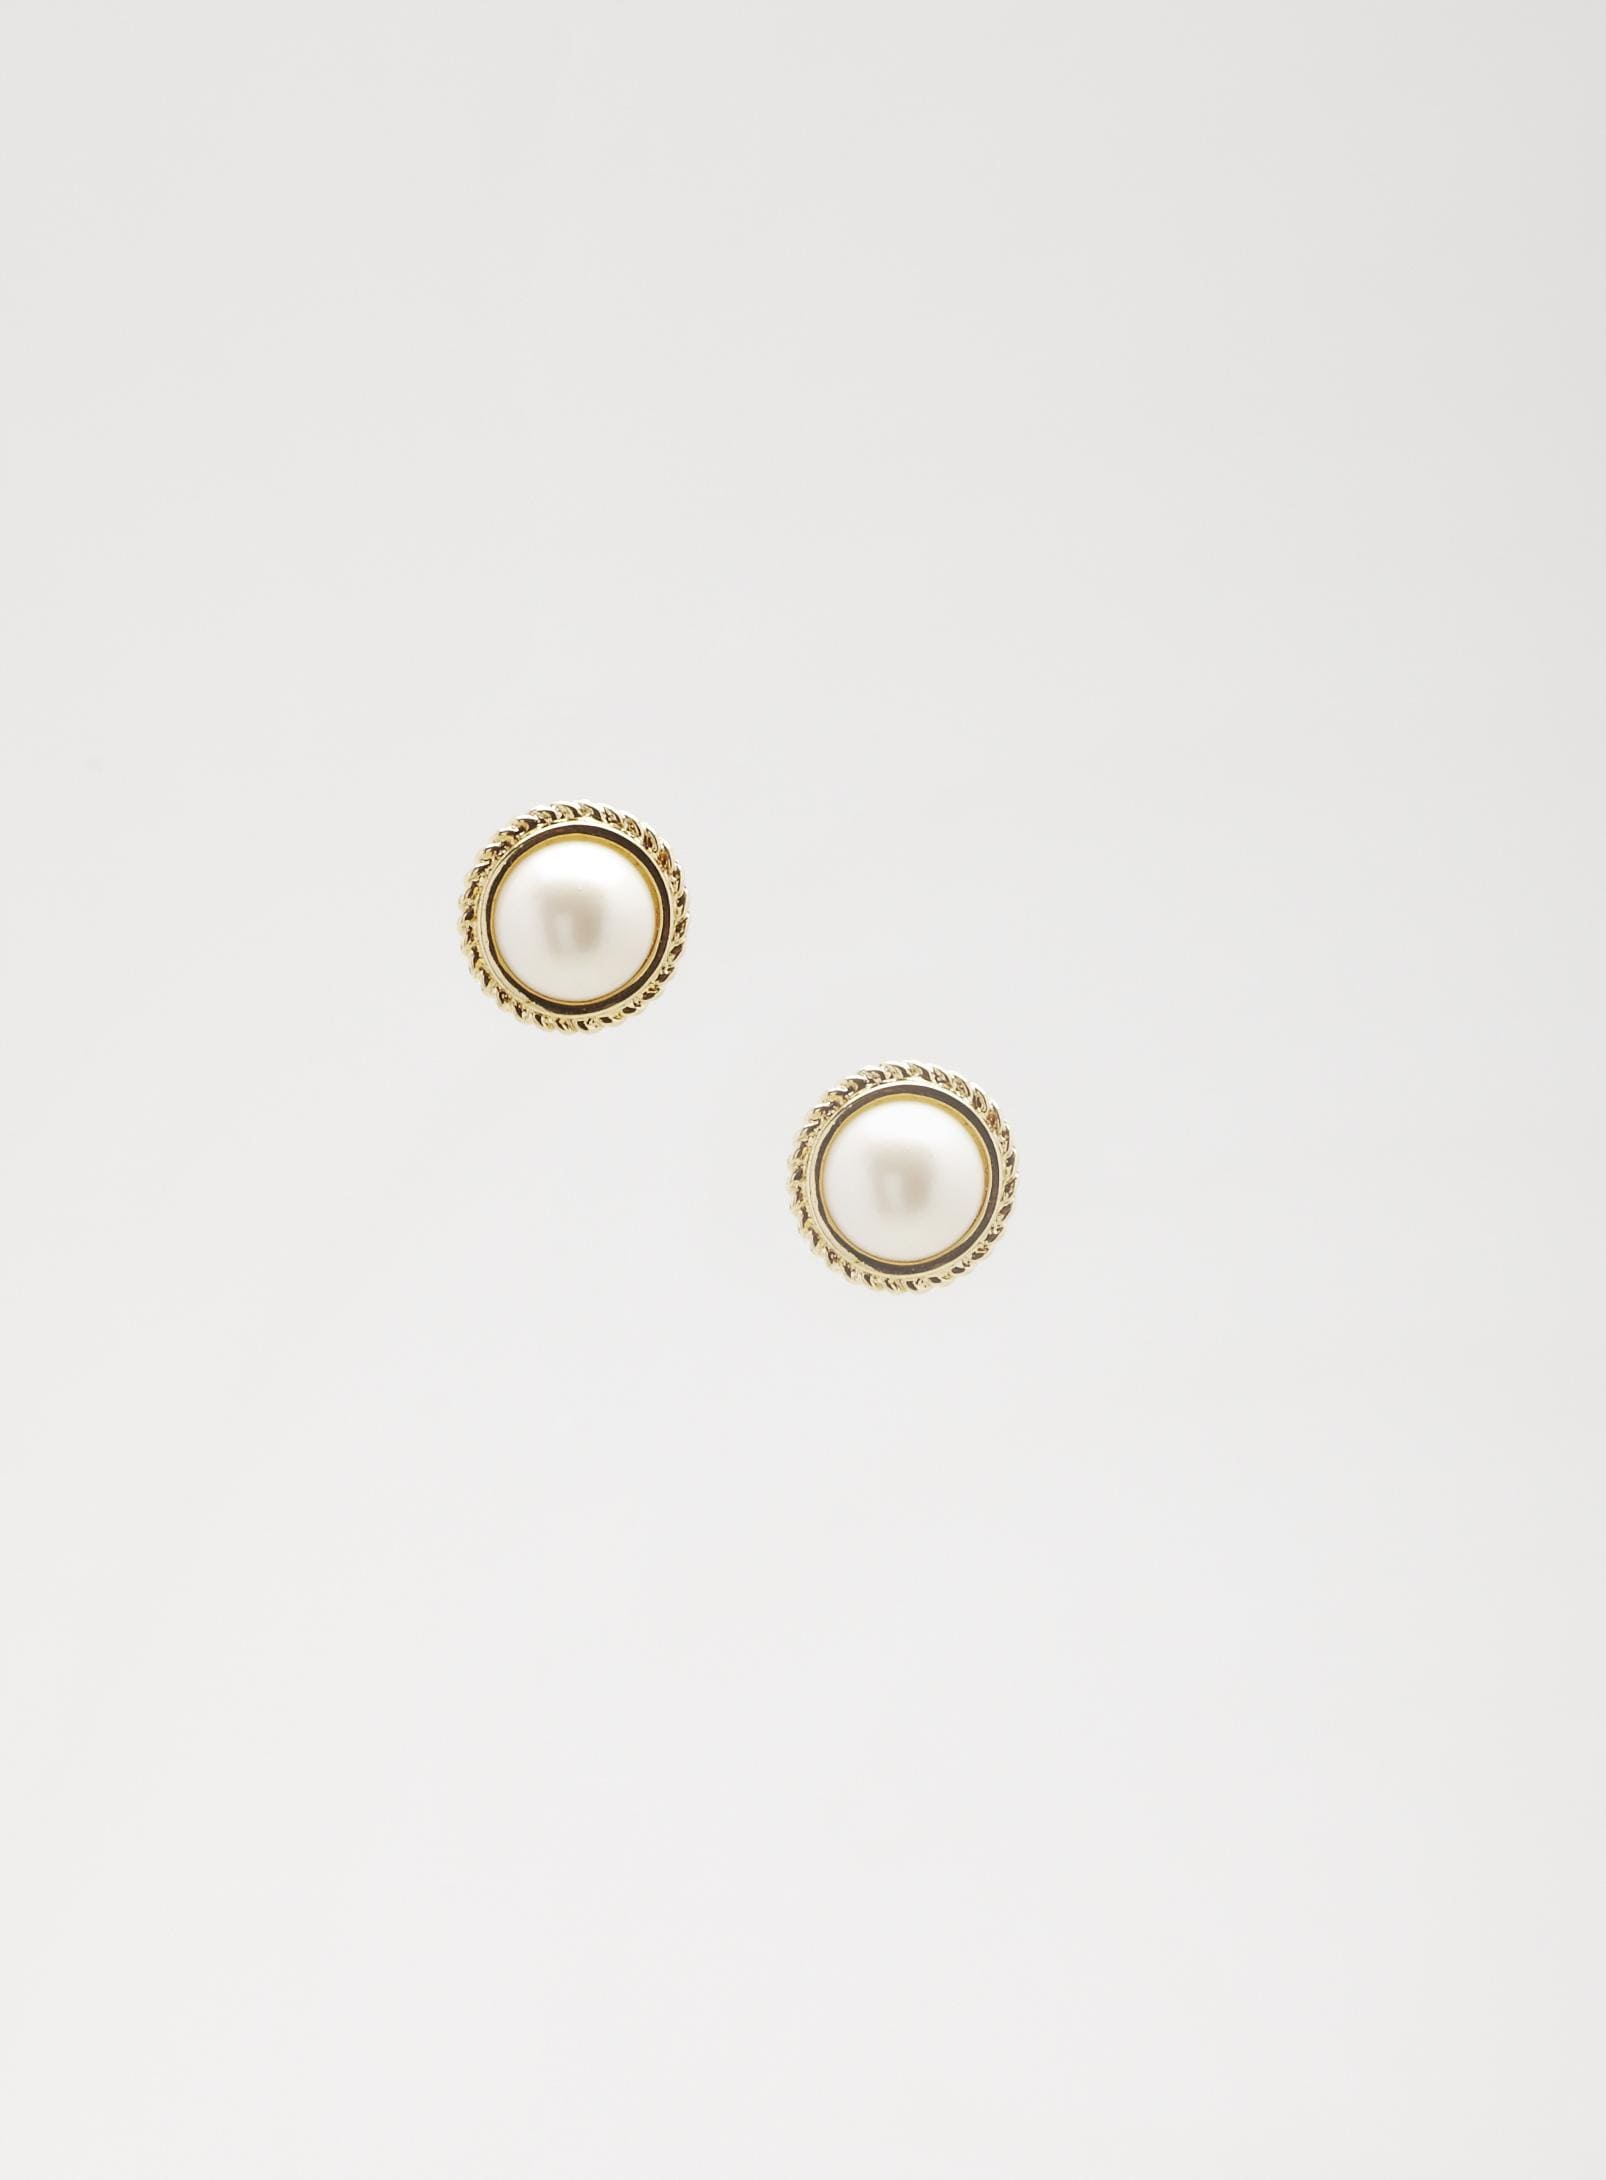 Giselle Isabella Round Pearl Button Earrings